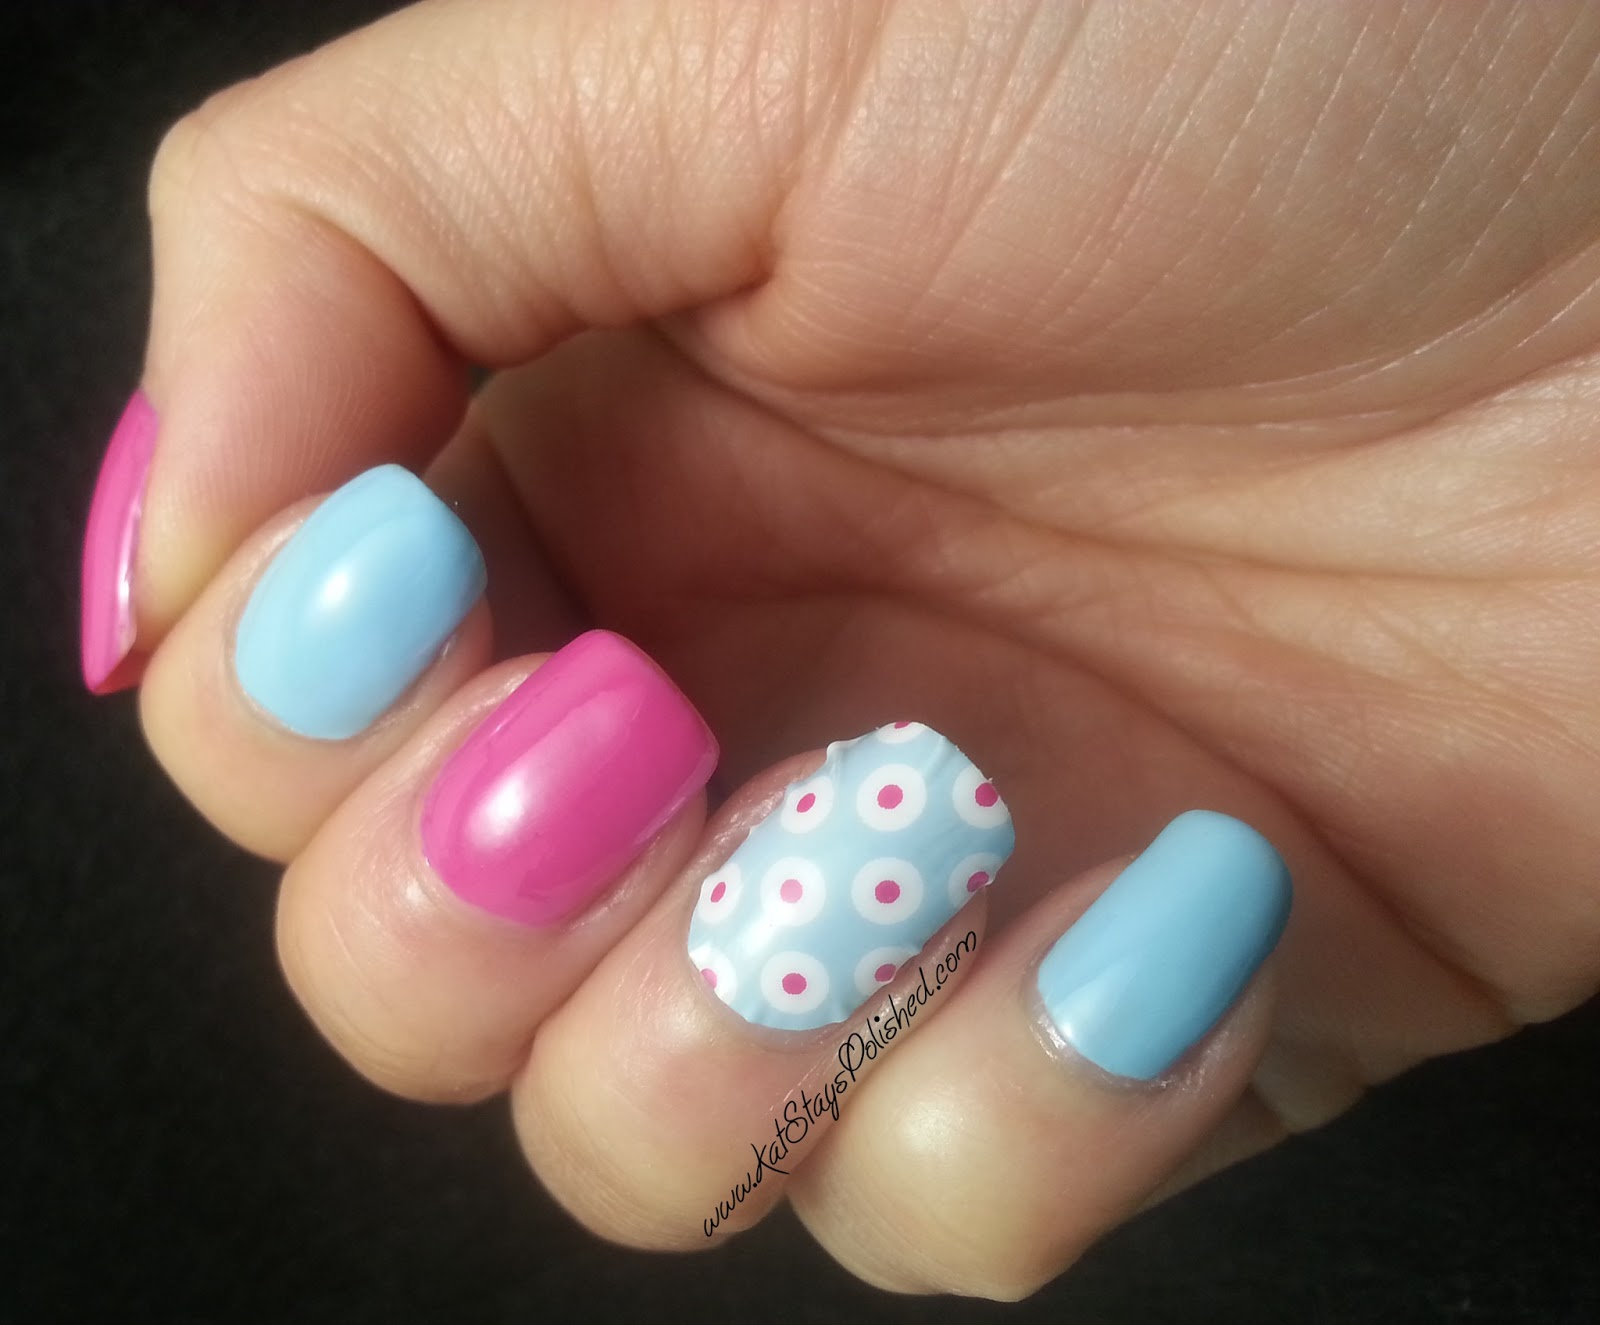 Kat Stays Polished | Beauty Blog with a Dash of Life: Jamberry Nail ...